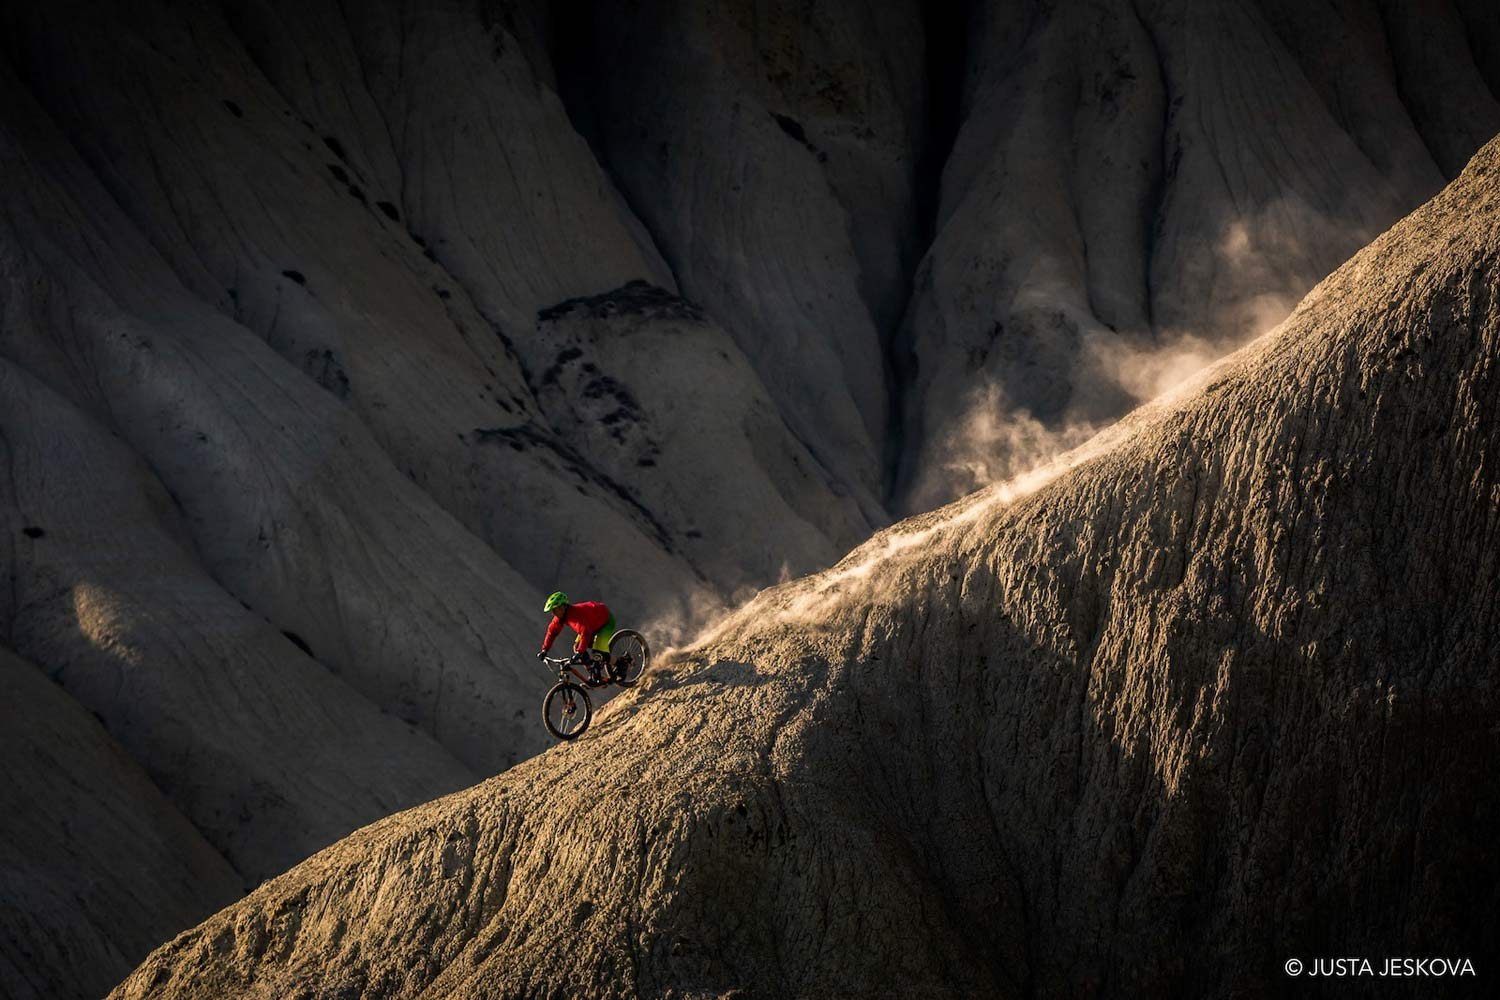 Chasing Shadows with Knolly factory rider Steve Storey, ride photos by Justa Jeskova